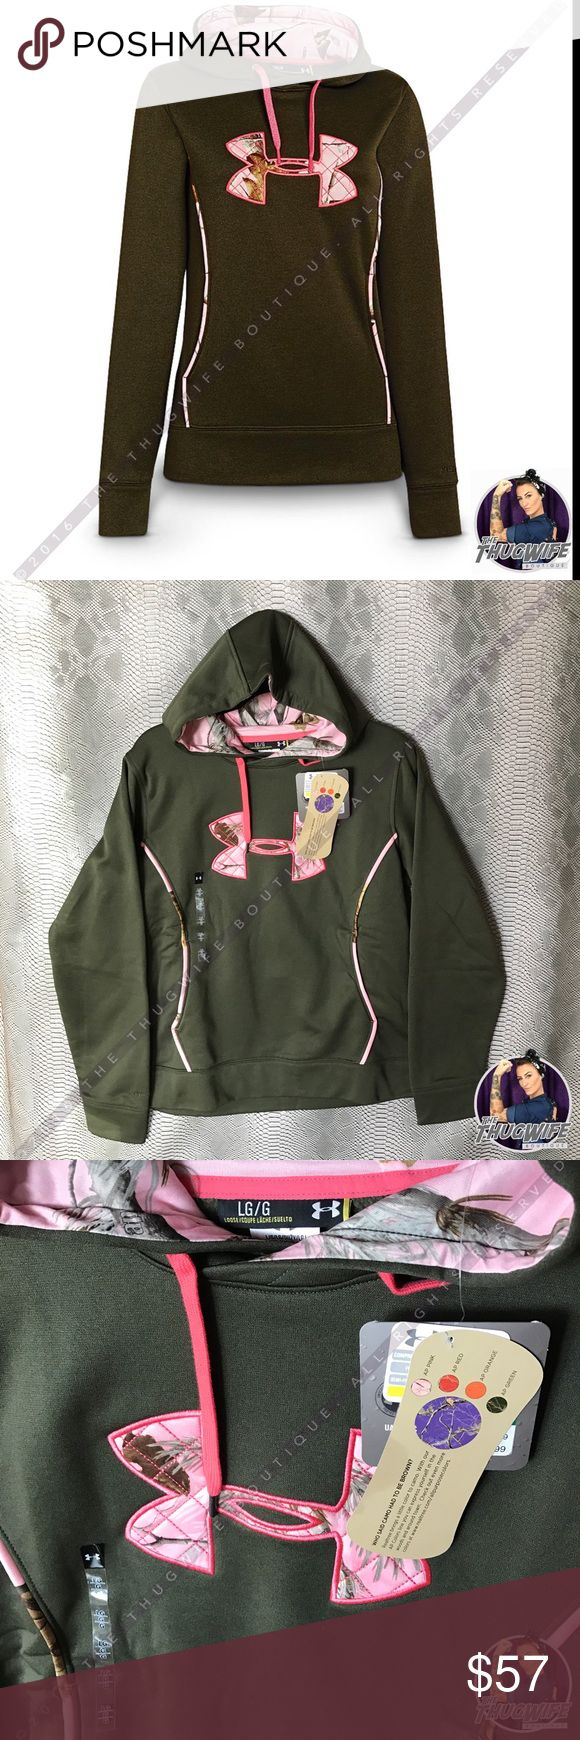 Under Armour pink real tree Camo lined hoodie NEW Under Armour Camo real tree  hoodie    NEW WITH TAGS  ( have many sizes not one in photo )  Authentic under Armour pull over hoodie . Forest green with pink Camo lining .  Waterproof great for layering sking snowboarding .     Use the OFFER BUTTON • bundle for 10% off        please no drama ladies lets be nice     • 5 star rating • over 300 sales • smoke free home • 100% authentic • packedtokill •         || www.thethugwife.com…